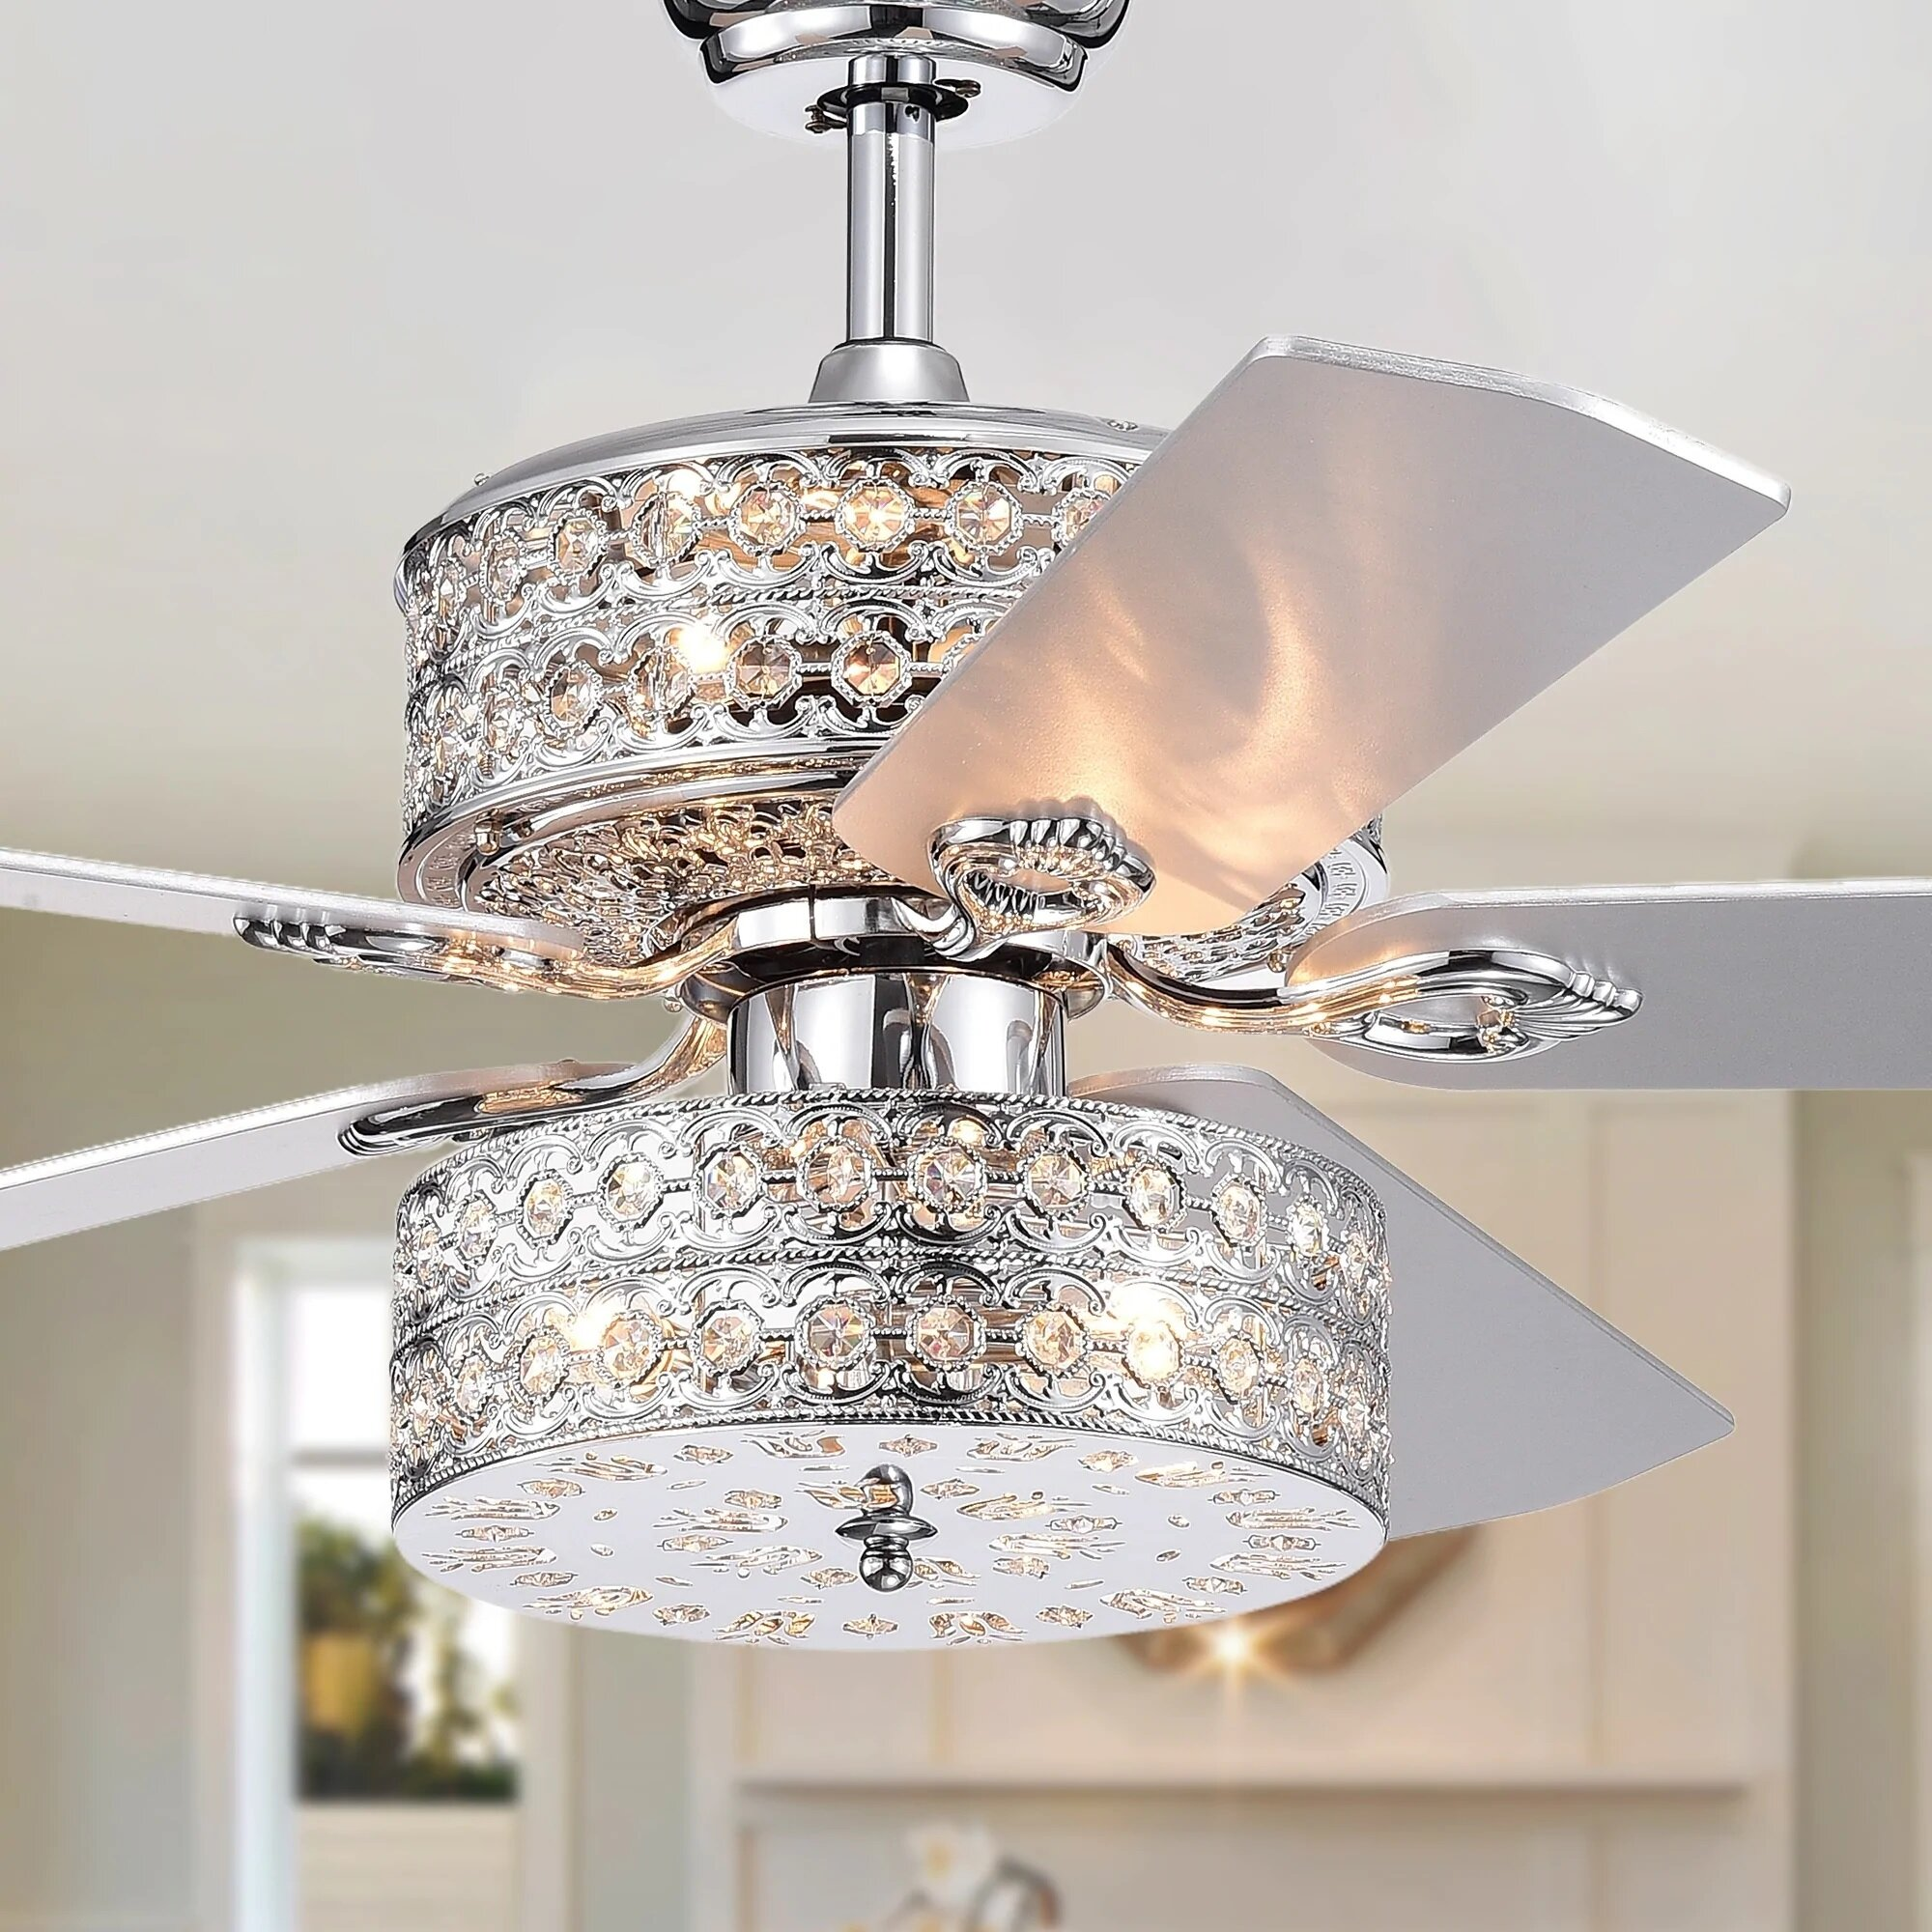 52 parma chandelier 5 blade ceiling fan with remote